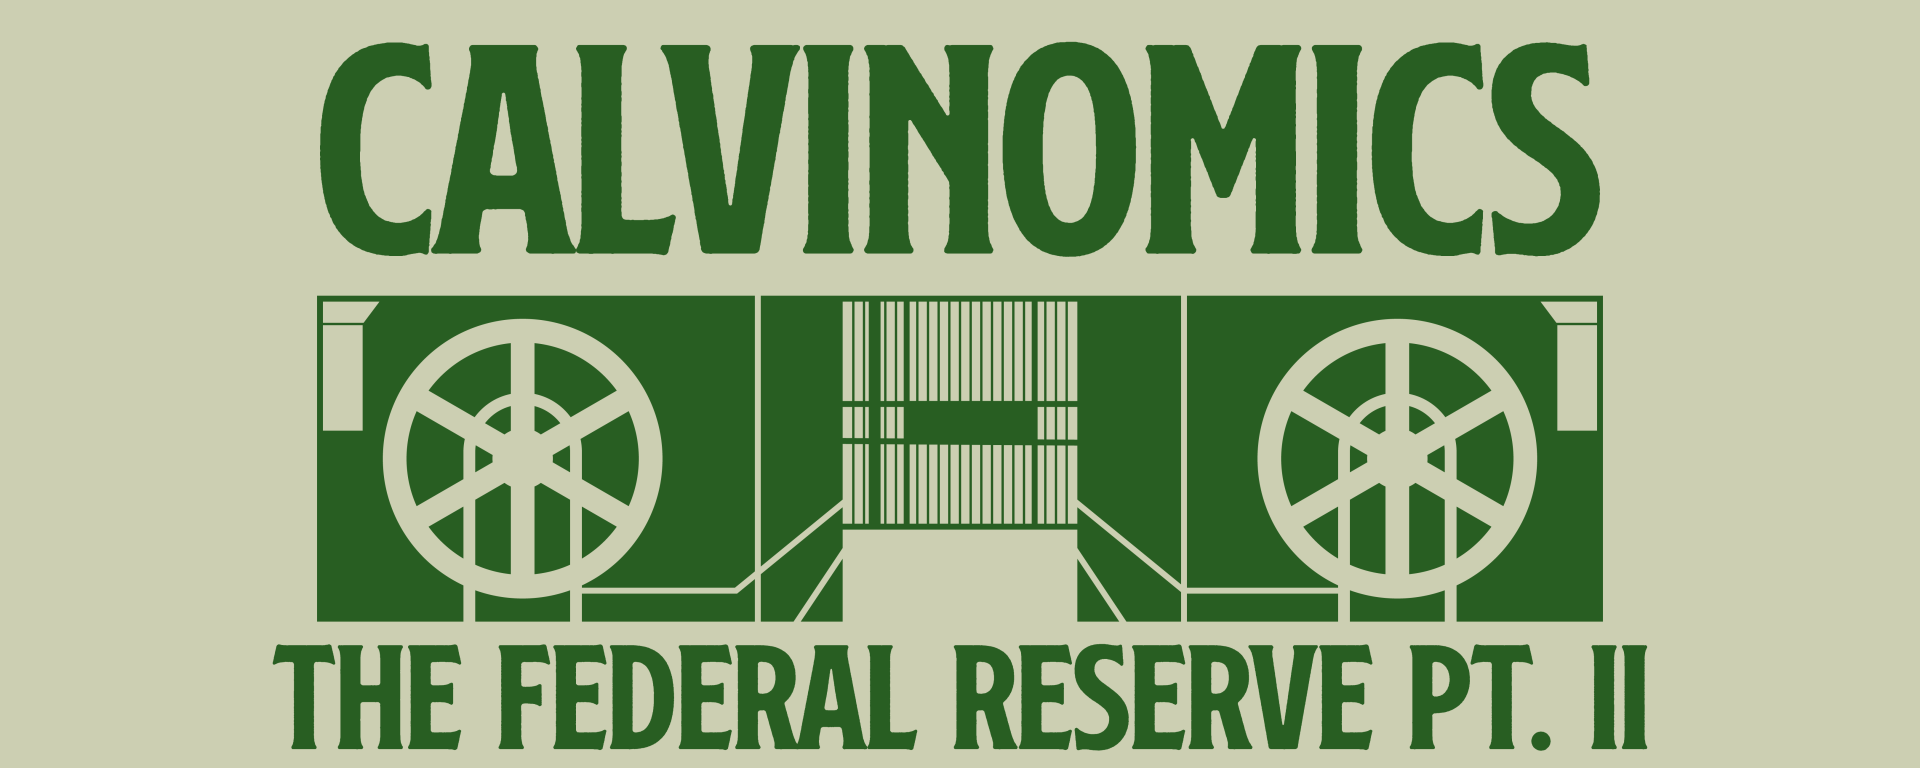 green text on green background that says calvinomics and The federal reserve part 2 with a bank lock splitting the words.